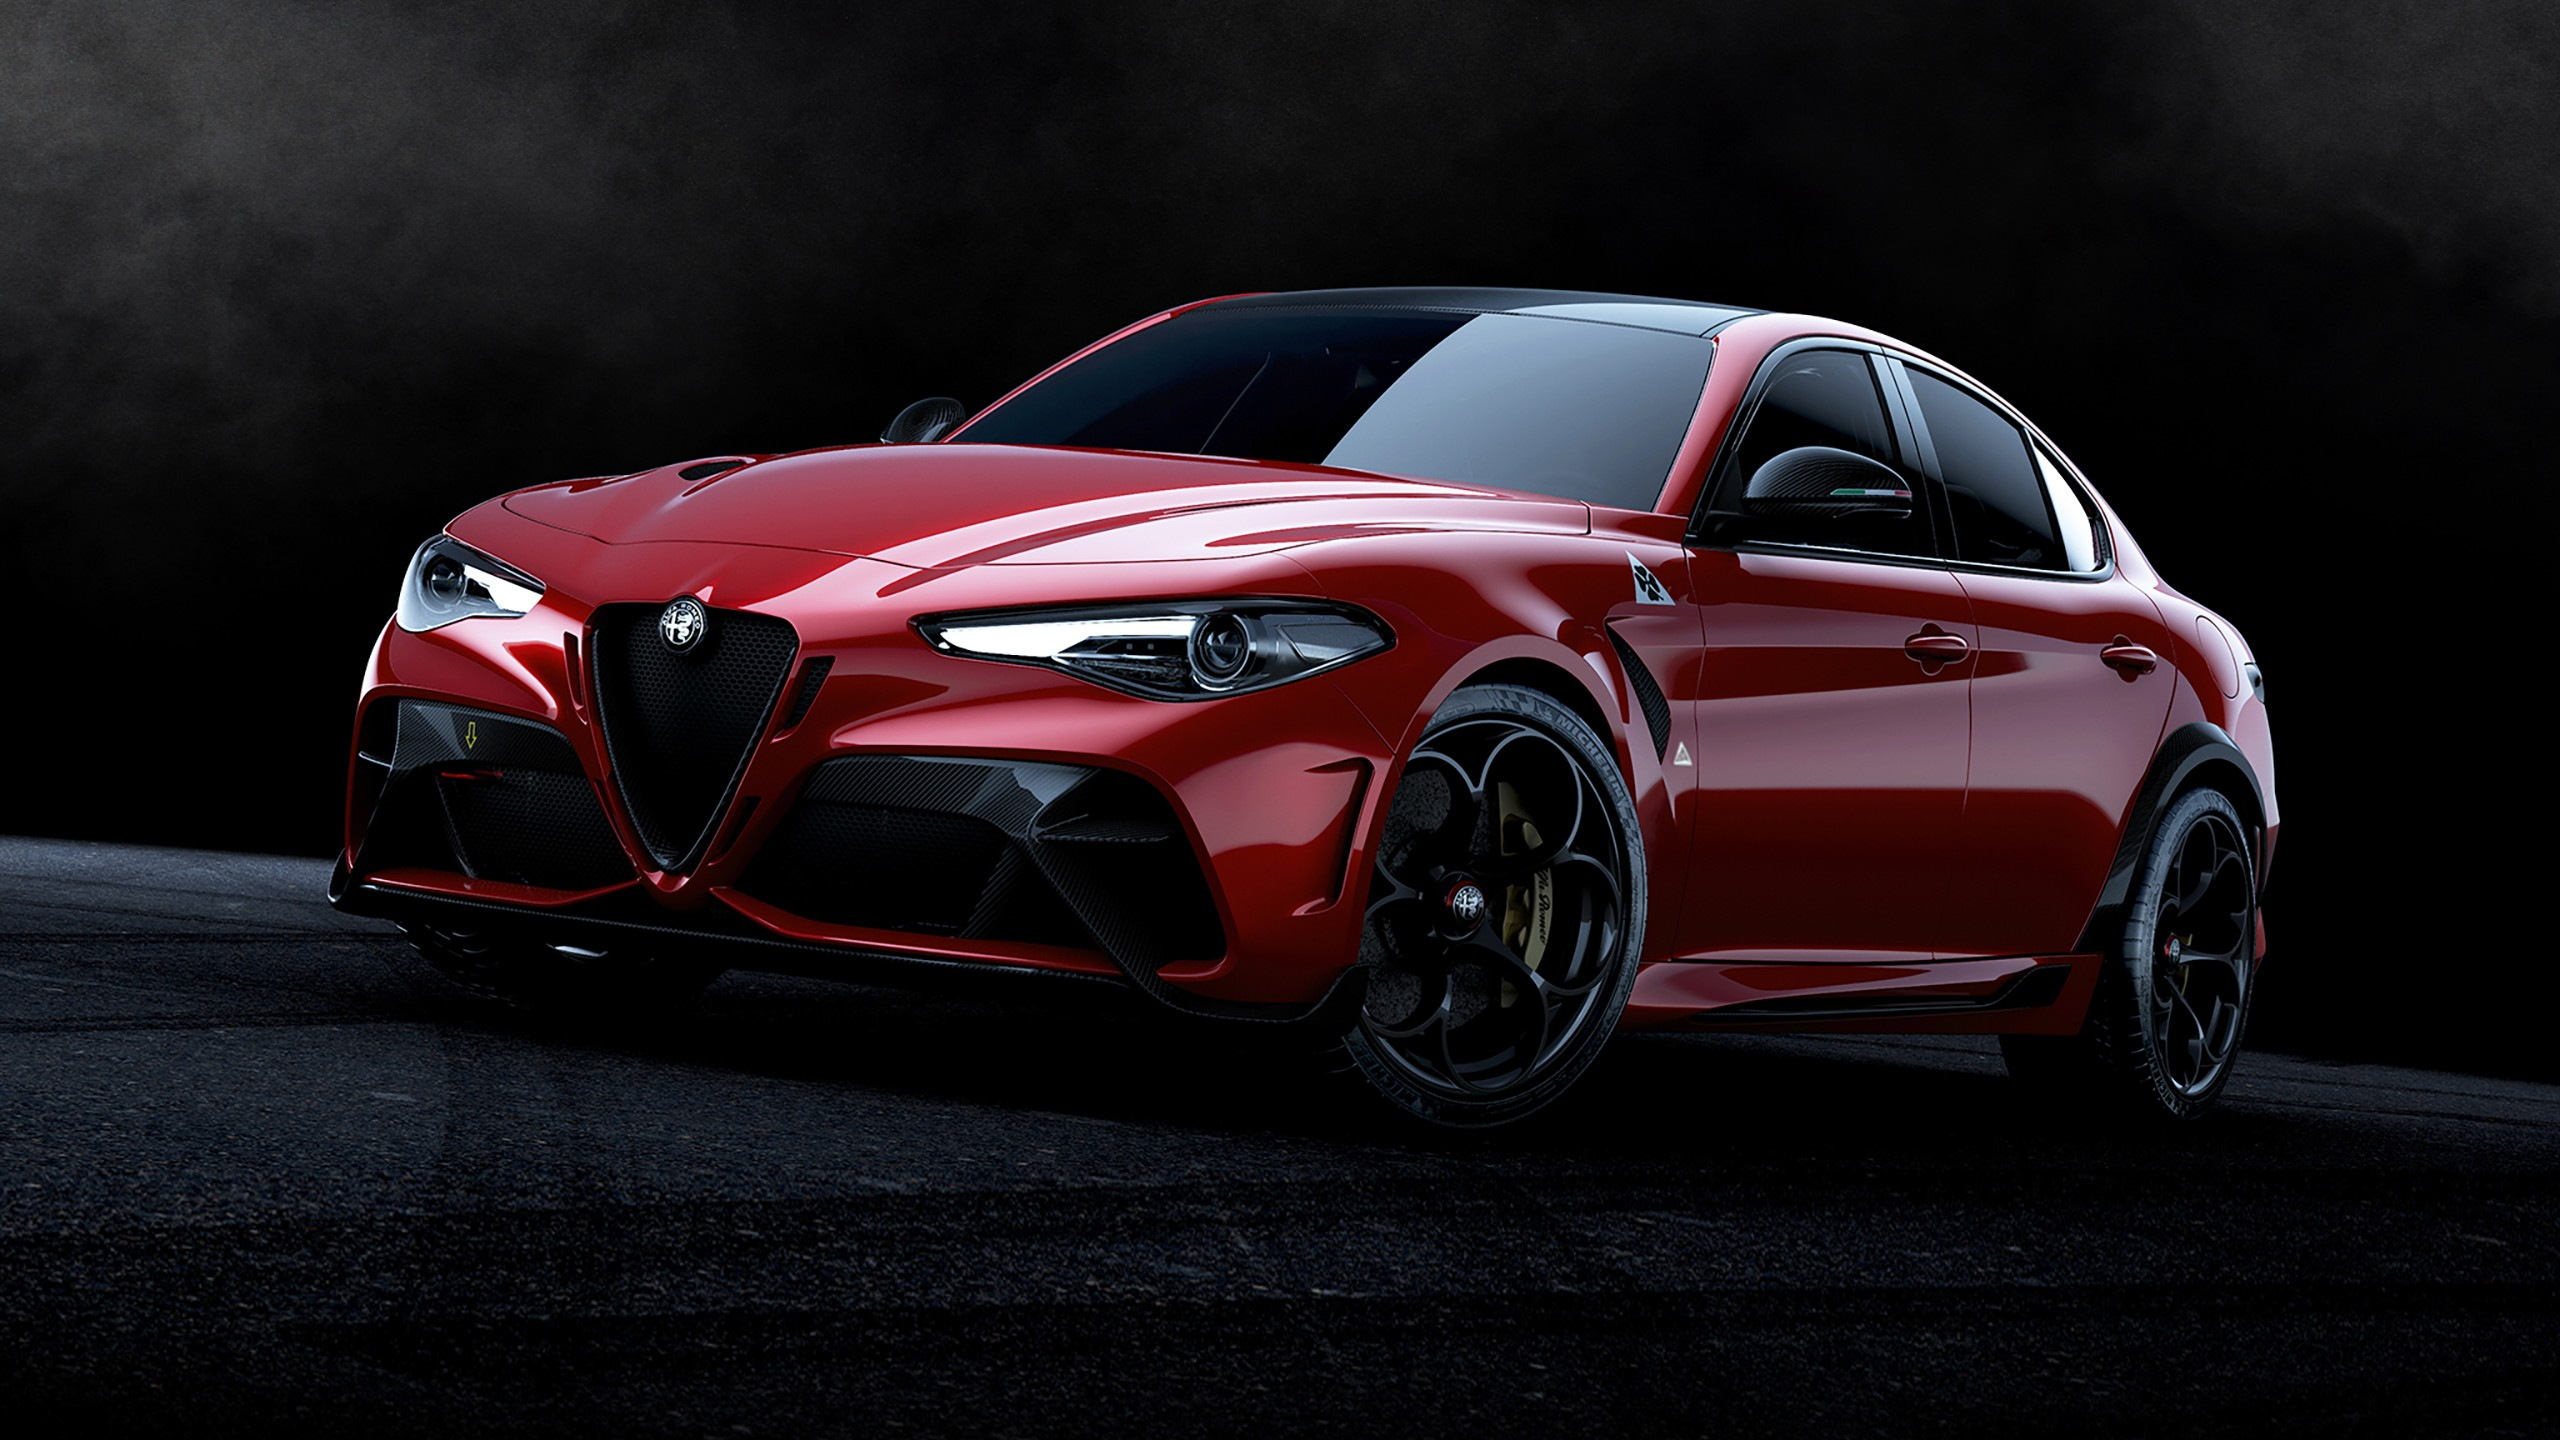 Alfa Romeo Giulia Gta 2020 Wallpaper Hd Car Wallpapers Id 14604